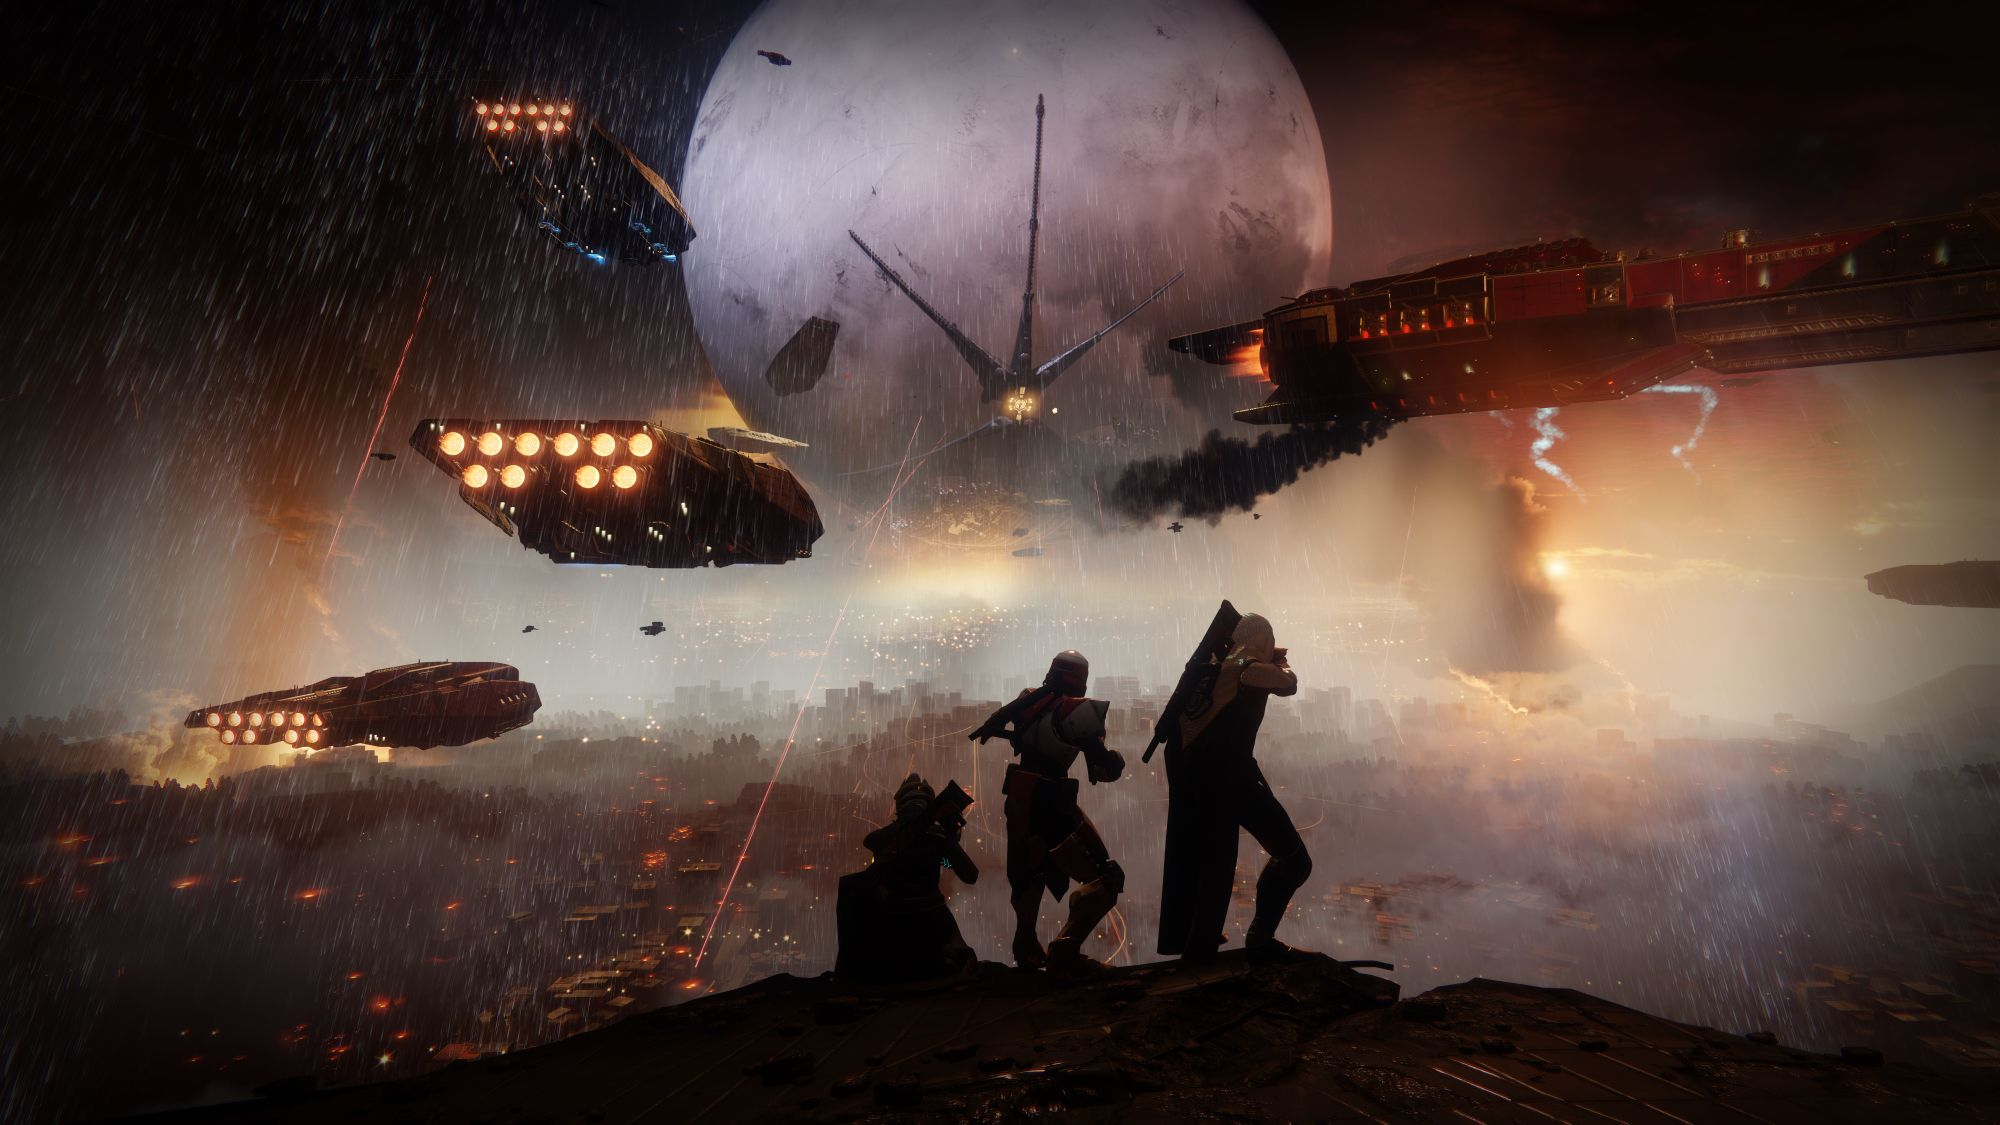 [Watch] E3 2017: Destiny 2 will release earlier than expected, beta and PC release dates revealed